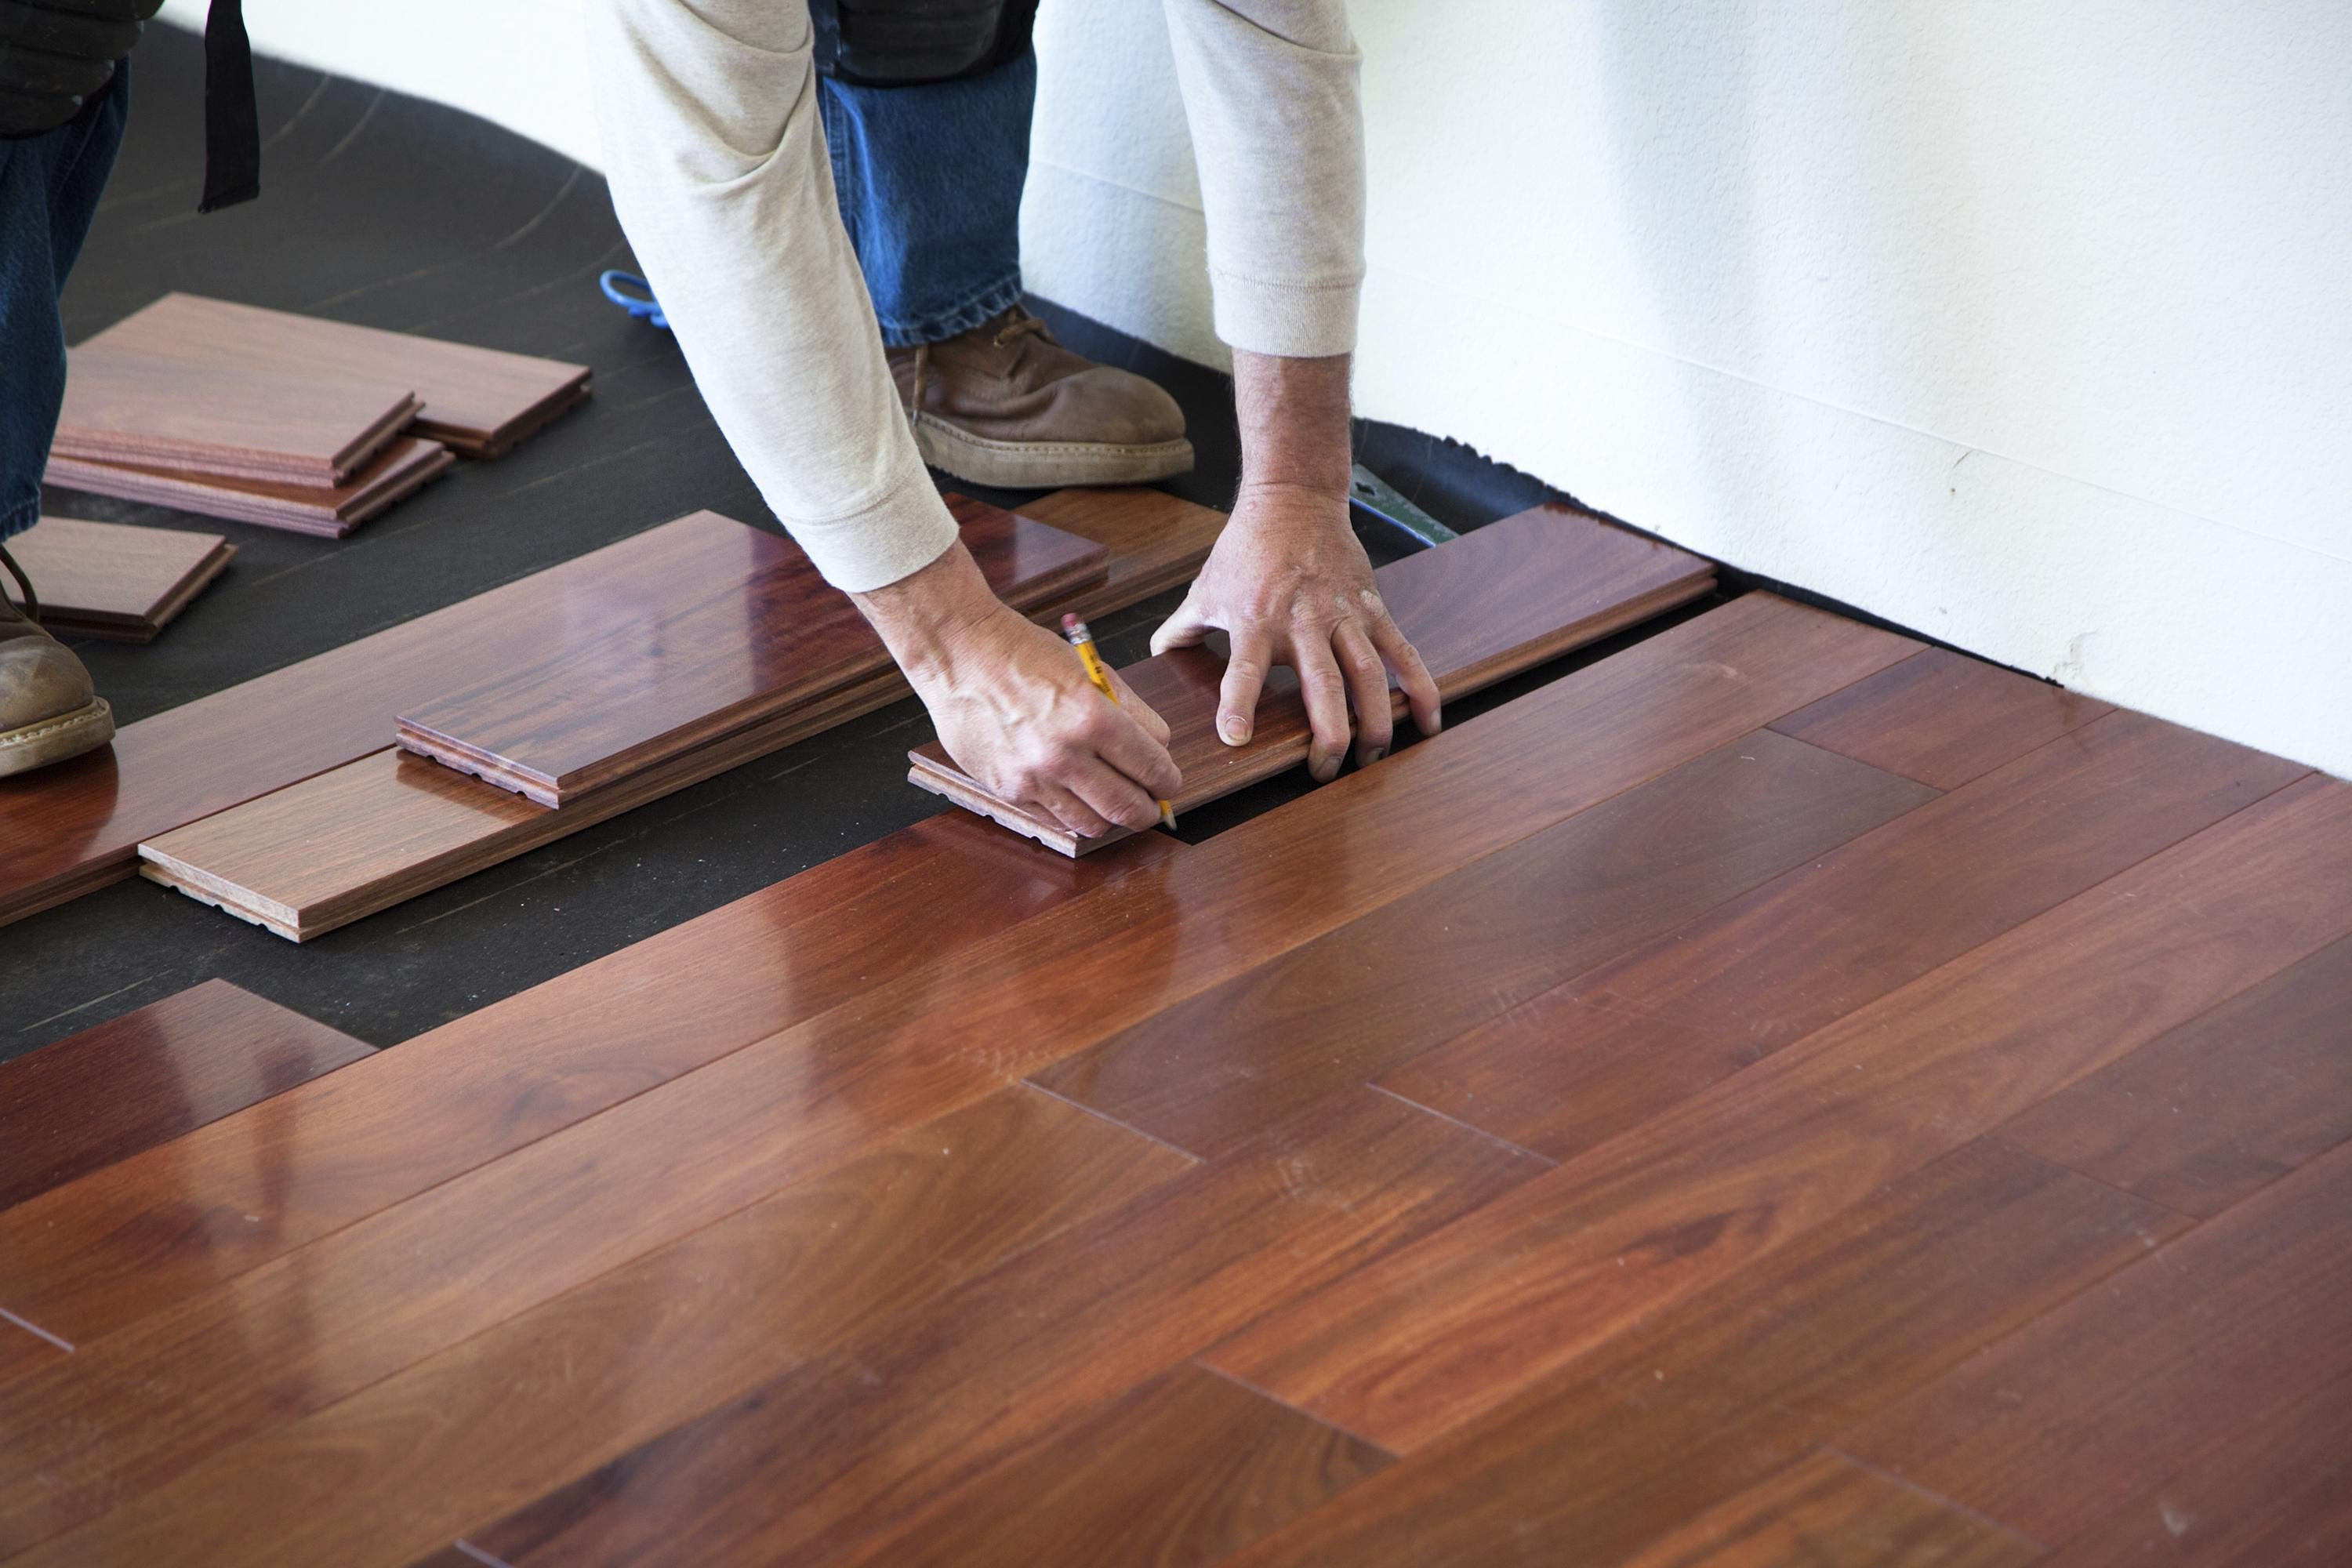 Hand Scraped Hardwood Vs Engineered Flooring Of 18 New How Much Do Hardwood Floors Cost Image Dizpos Com Inside How Much Do Hardwood Floors Cost Inspirational This is How Much Hardwood Flooring to order Images